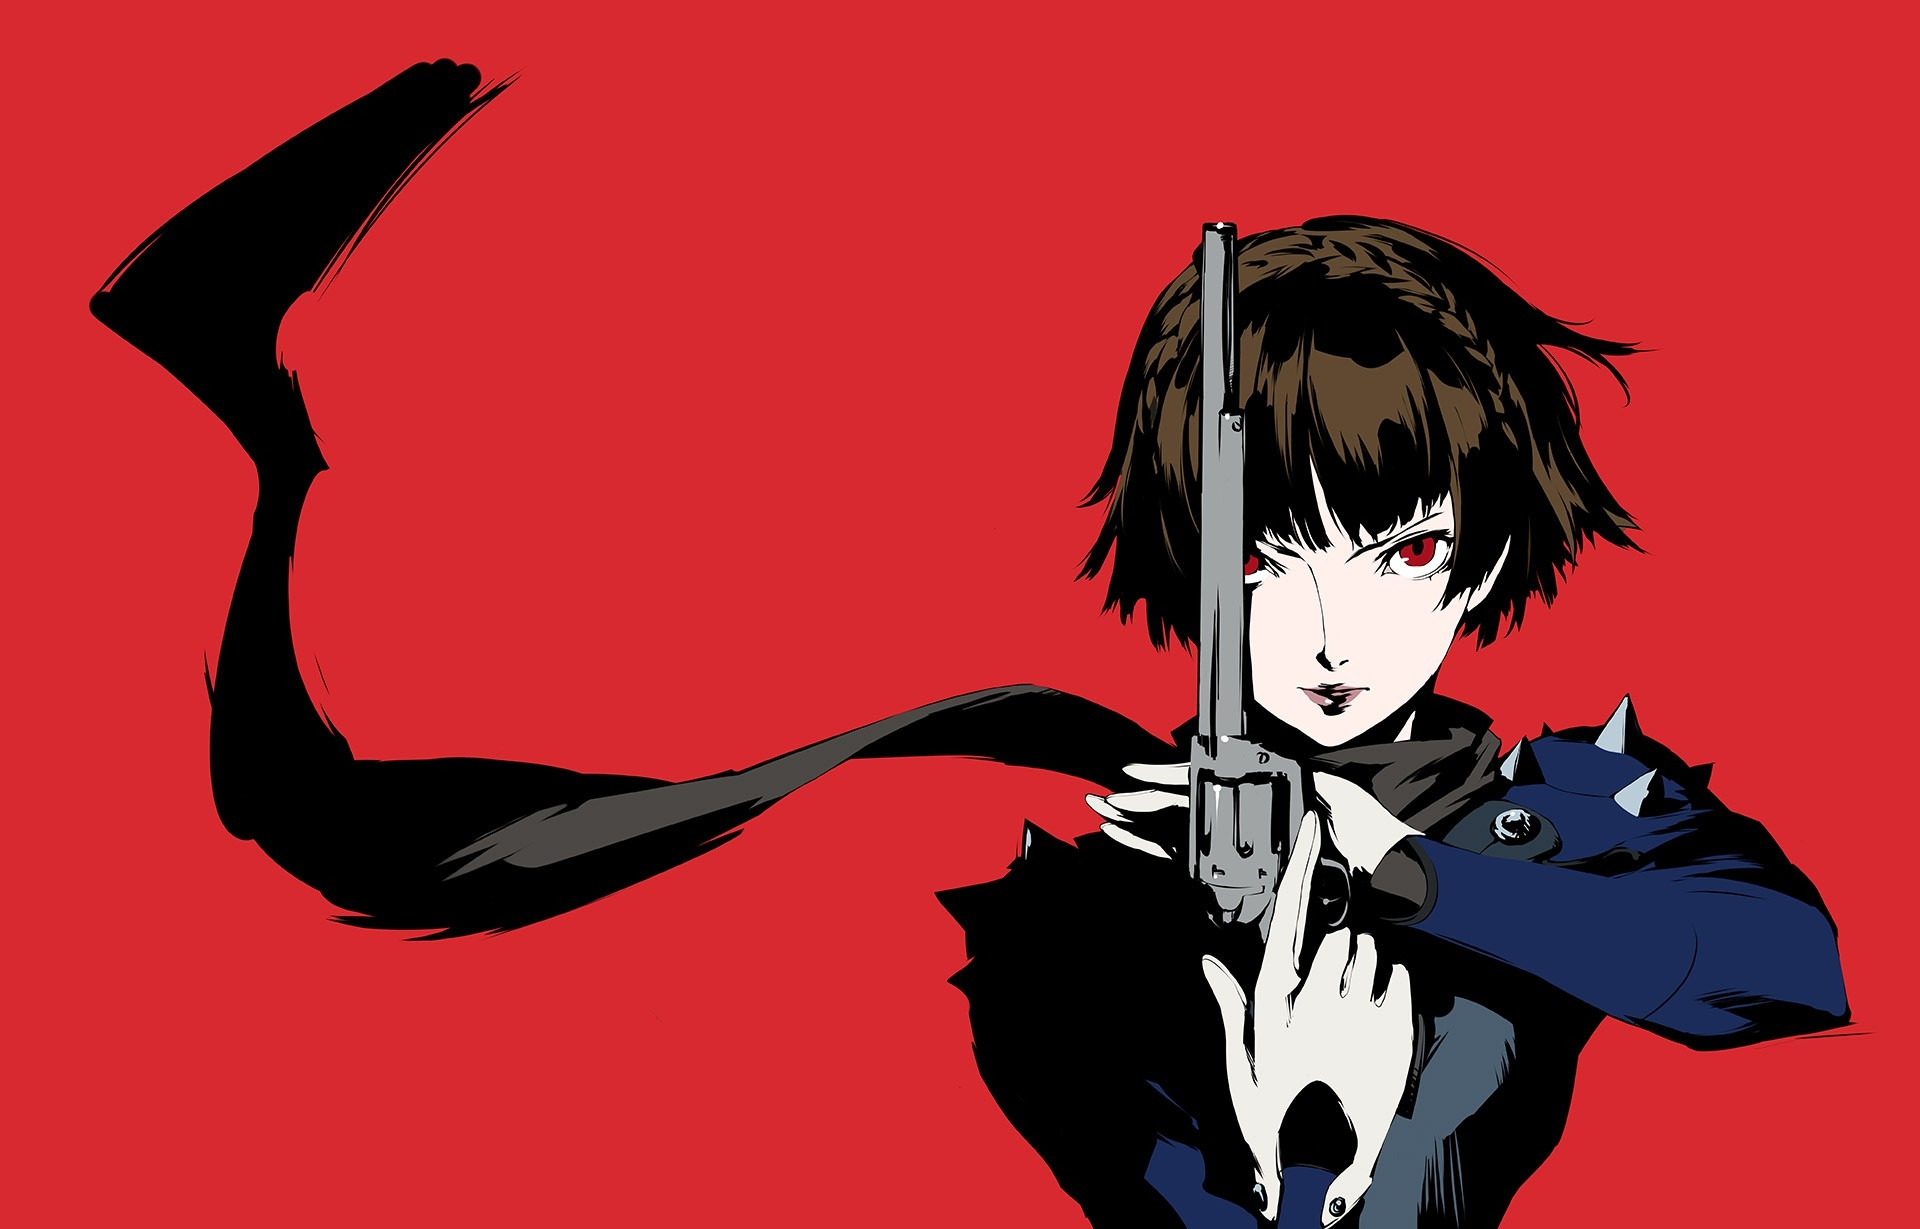 Queen Persona 5 Wallpaper, HD Anime 4K Wallpapers, Images ...